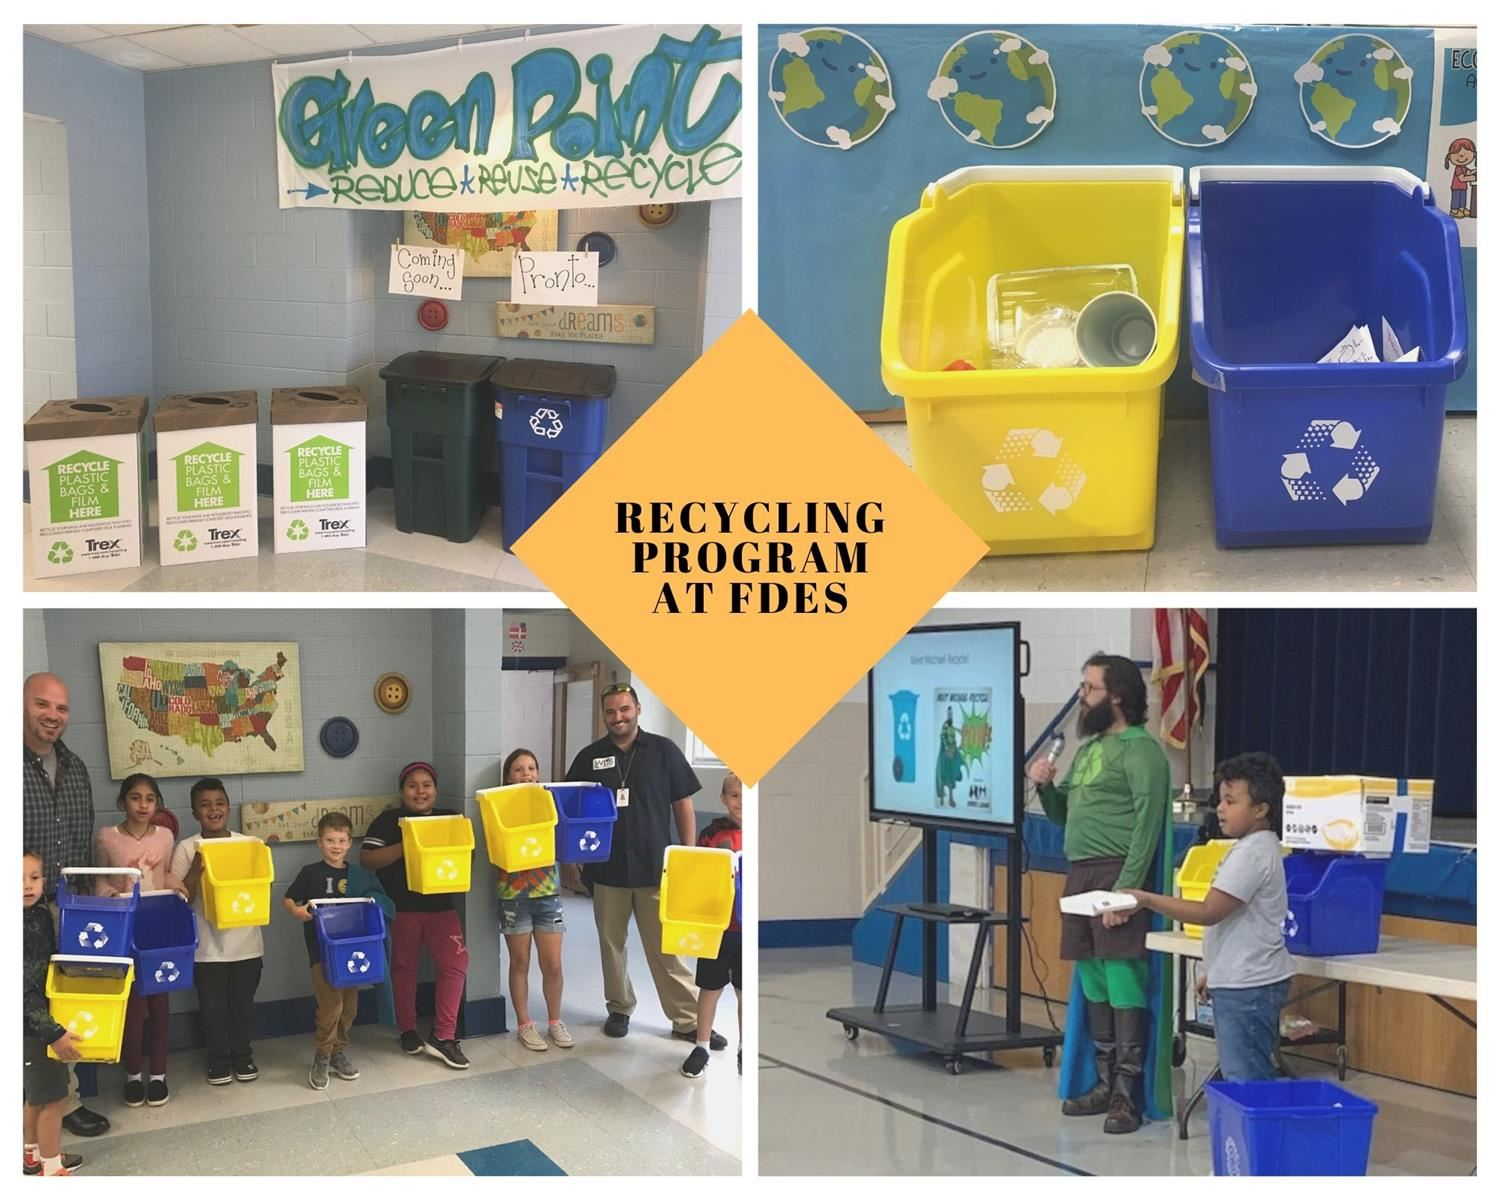 Green Point Recycling Program at FDES